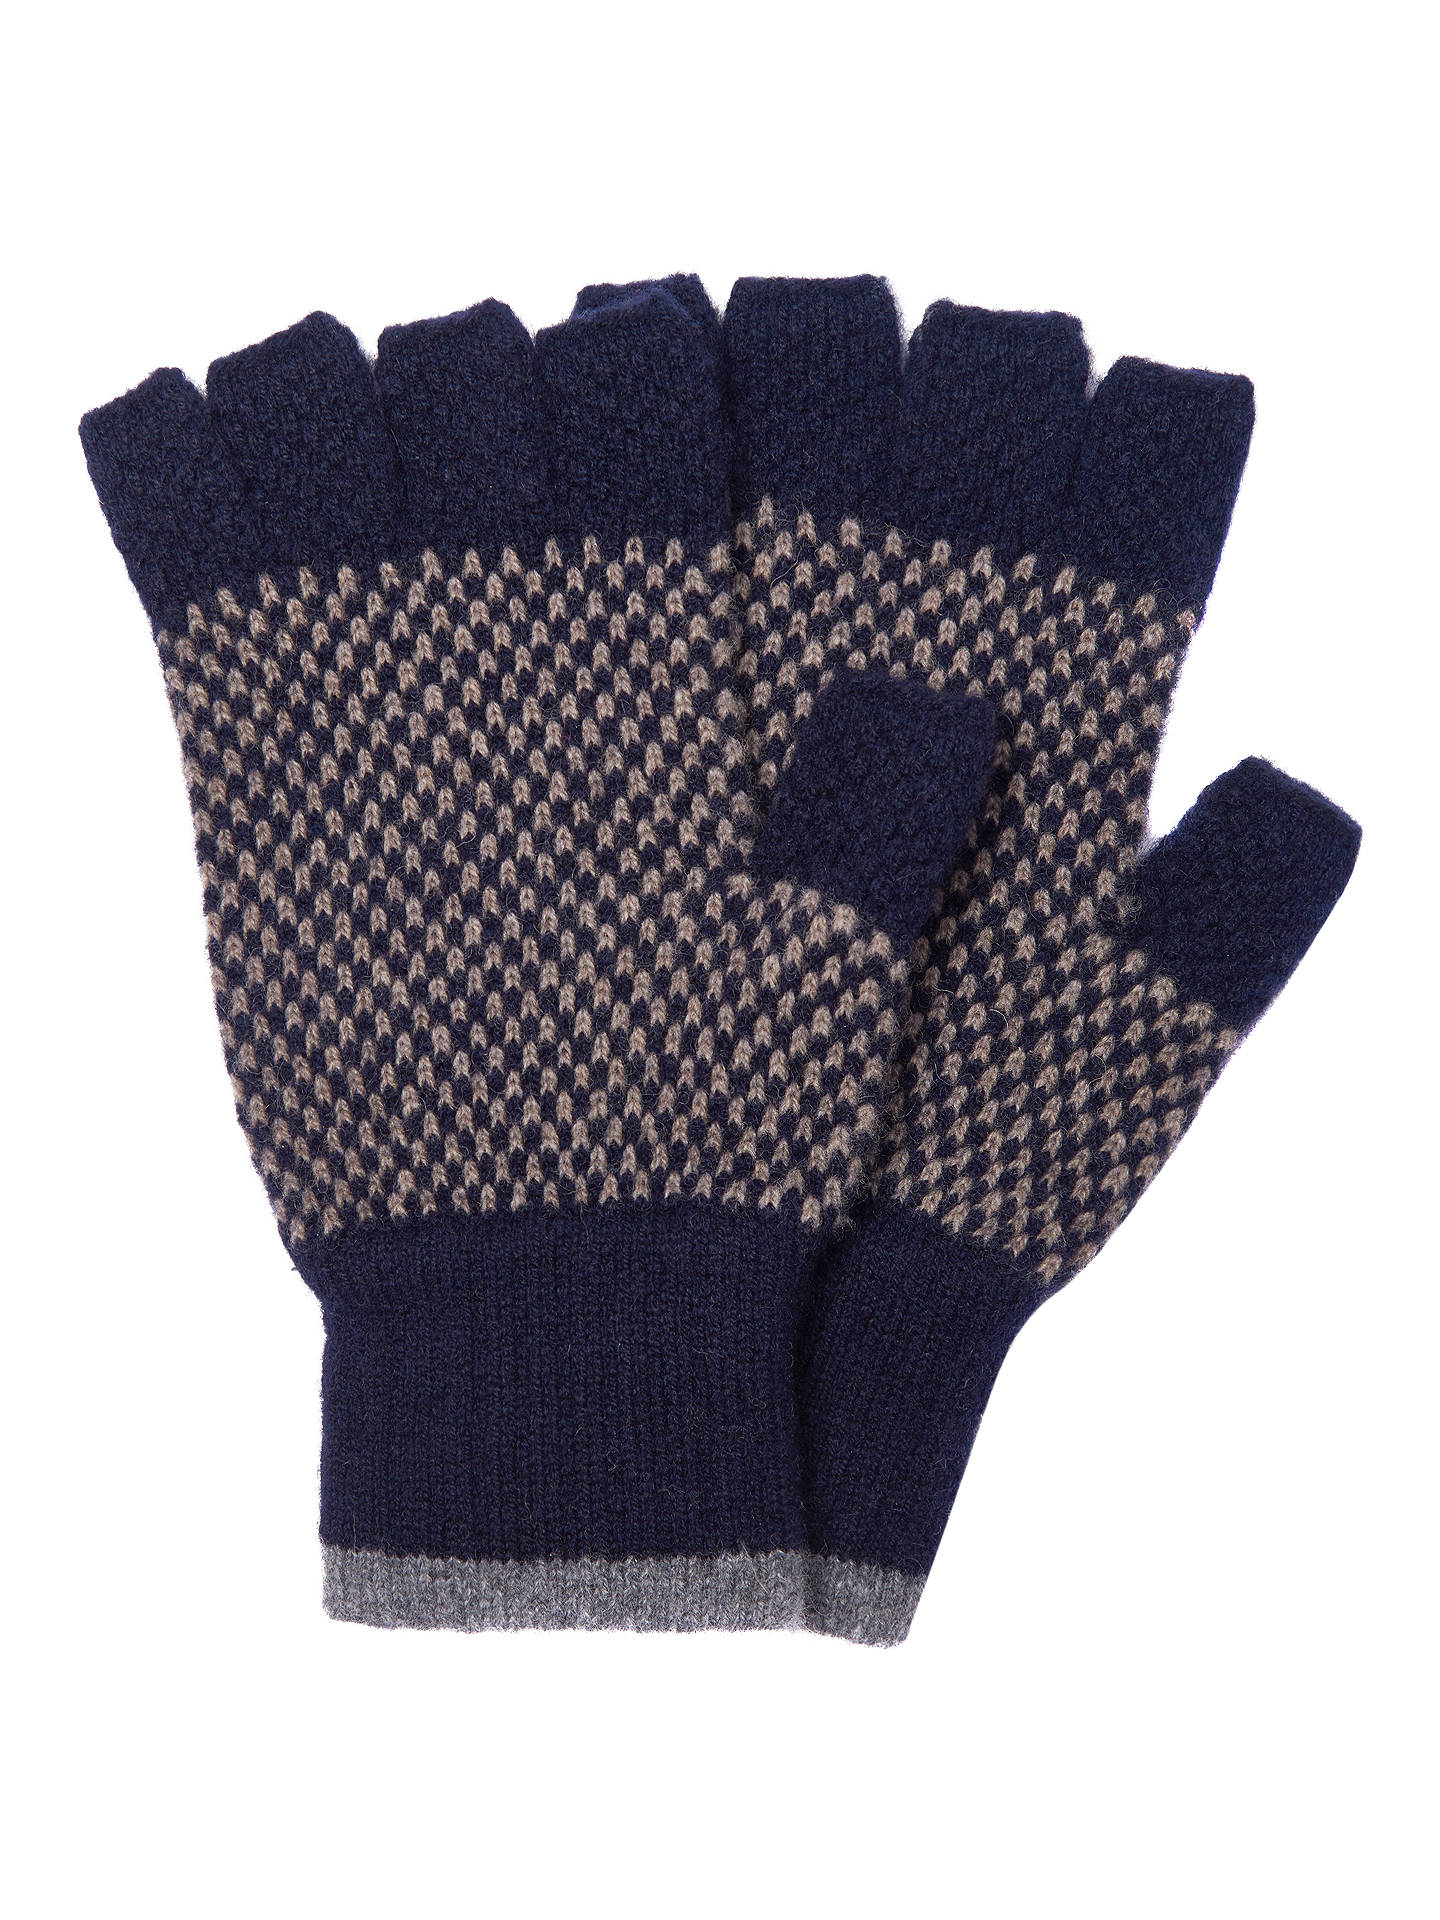 4cc73b2f565a2 Buy Barbour Brodie Check Lambswool Fingerless Gloves, Navy, S Online at  johnlewis.com